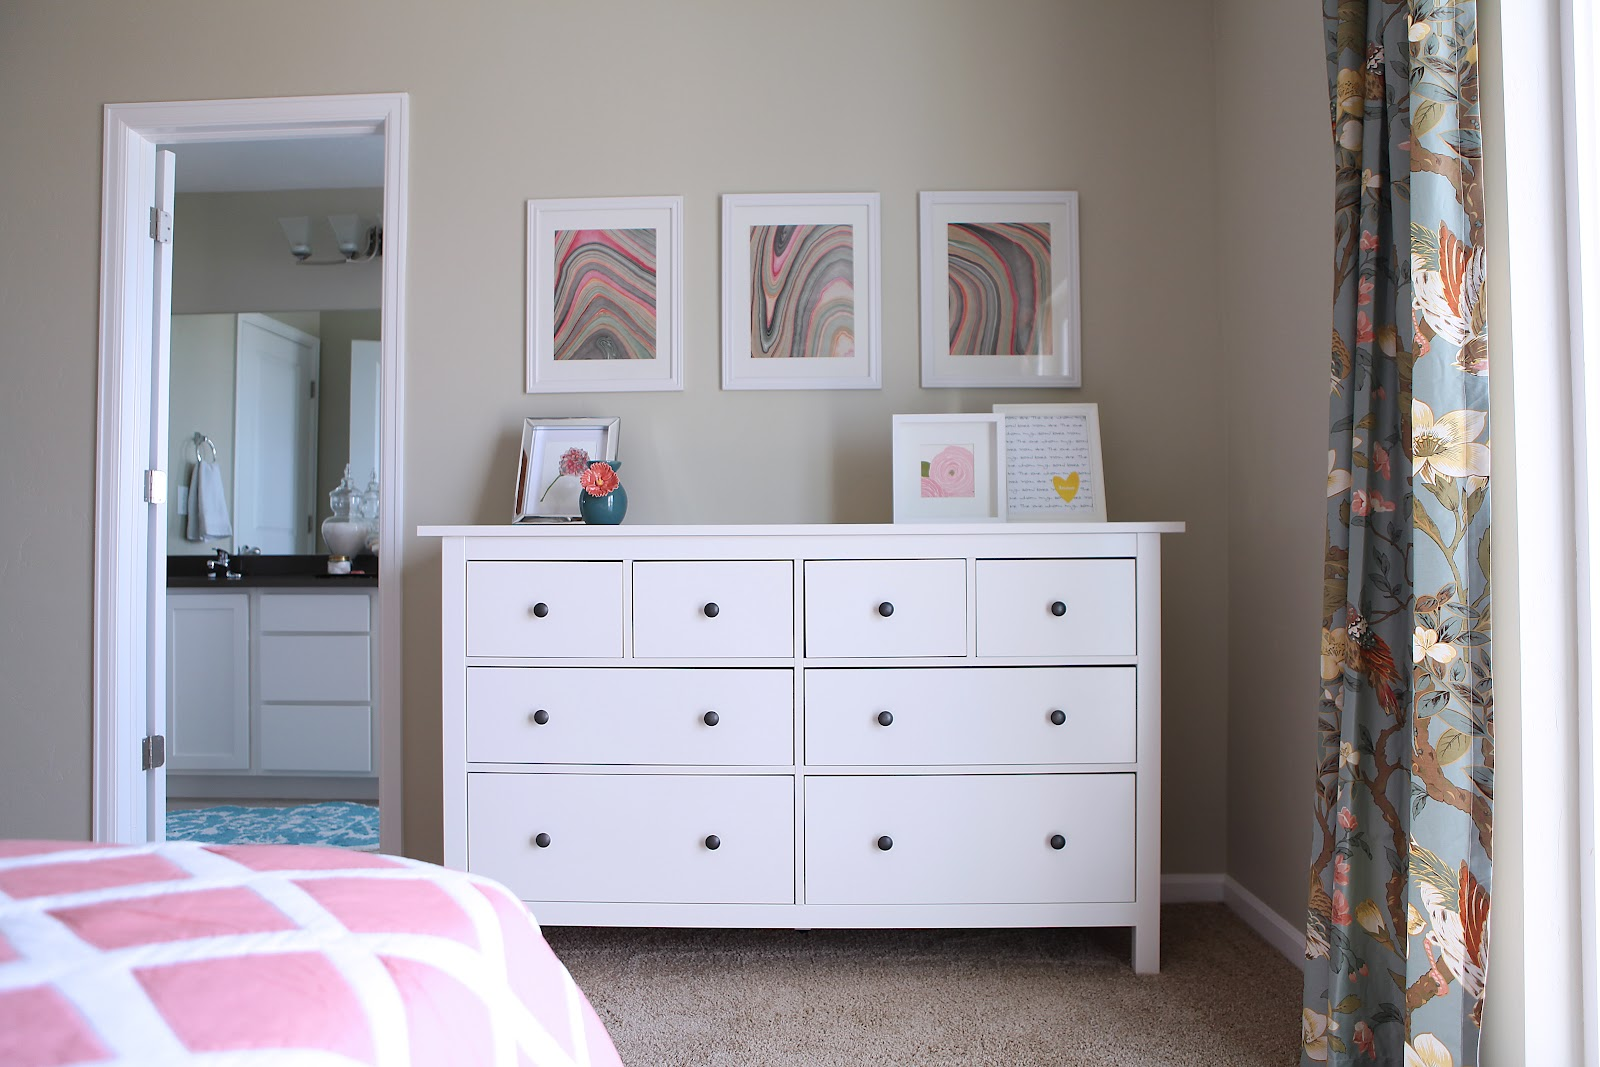 Why you should invest in a set of ikea white hemnes bedroom furniture interior exterior ideas - Hemnes cassettiera ikea ...